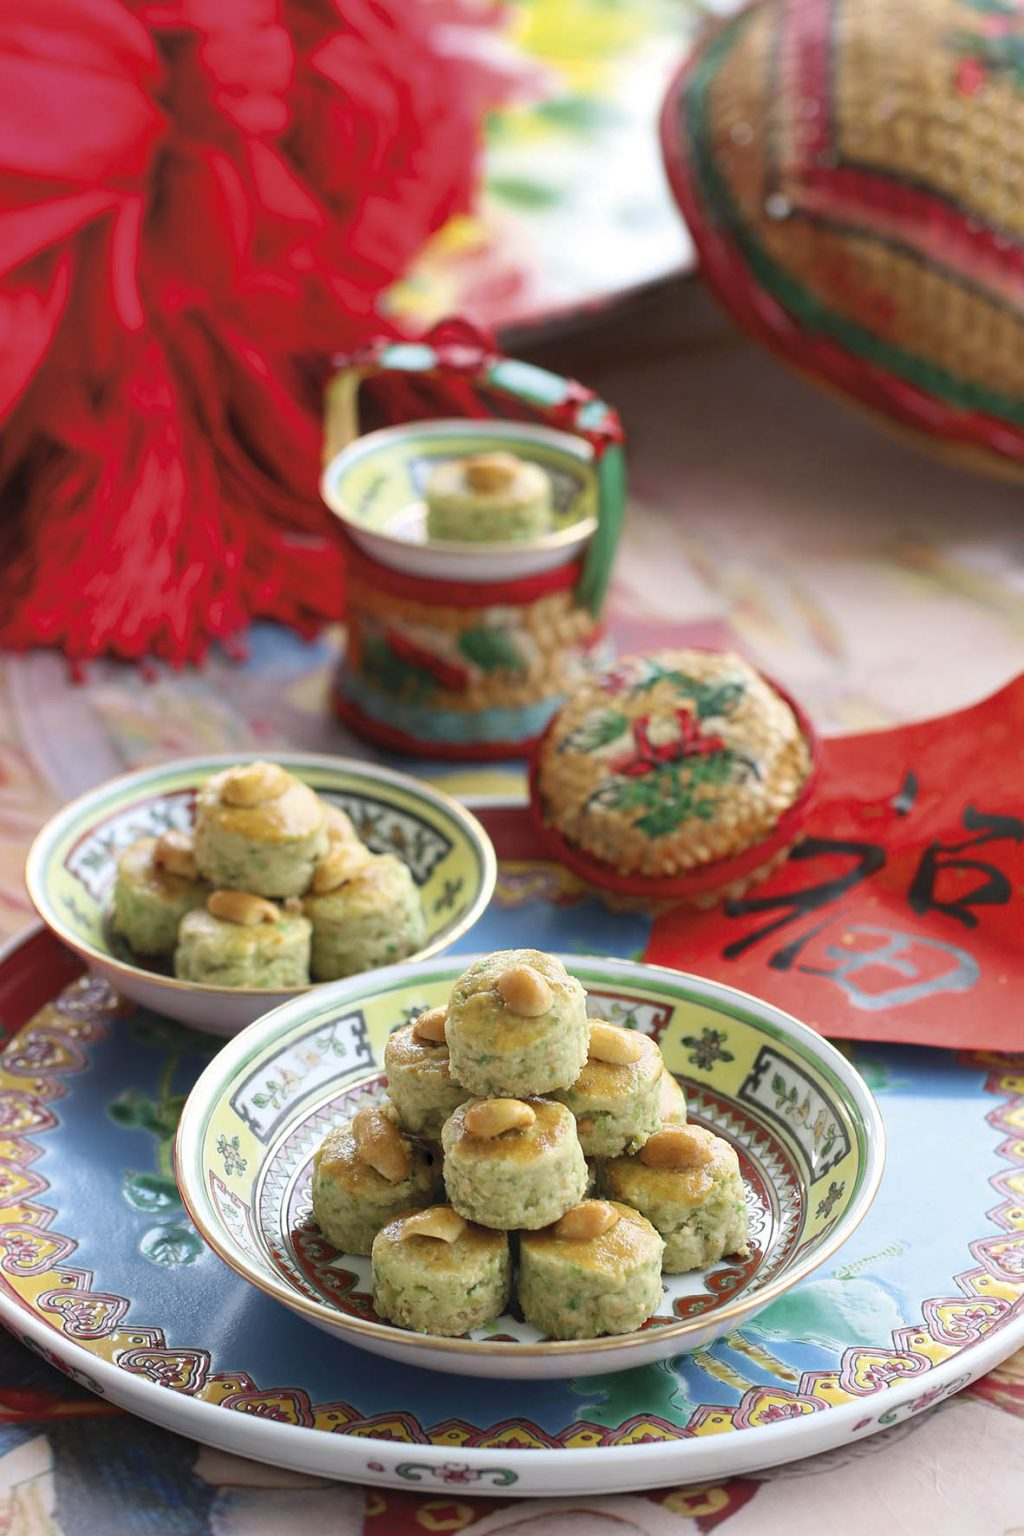 Peanut-Green Pea Cookies